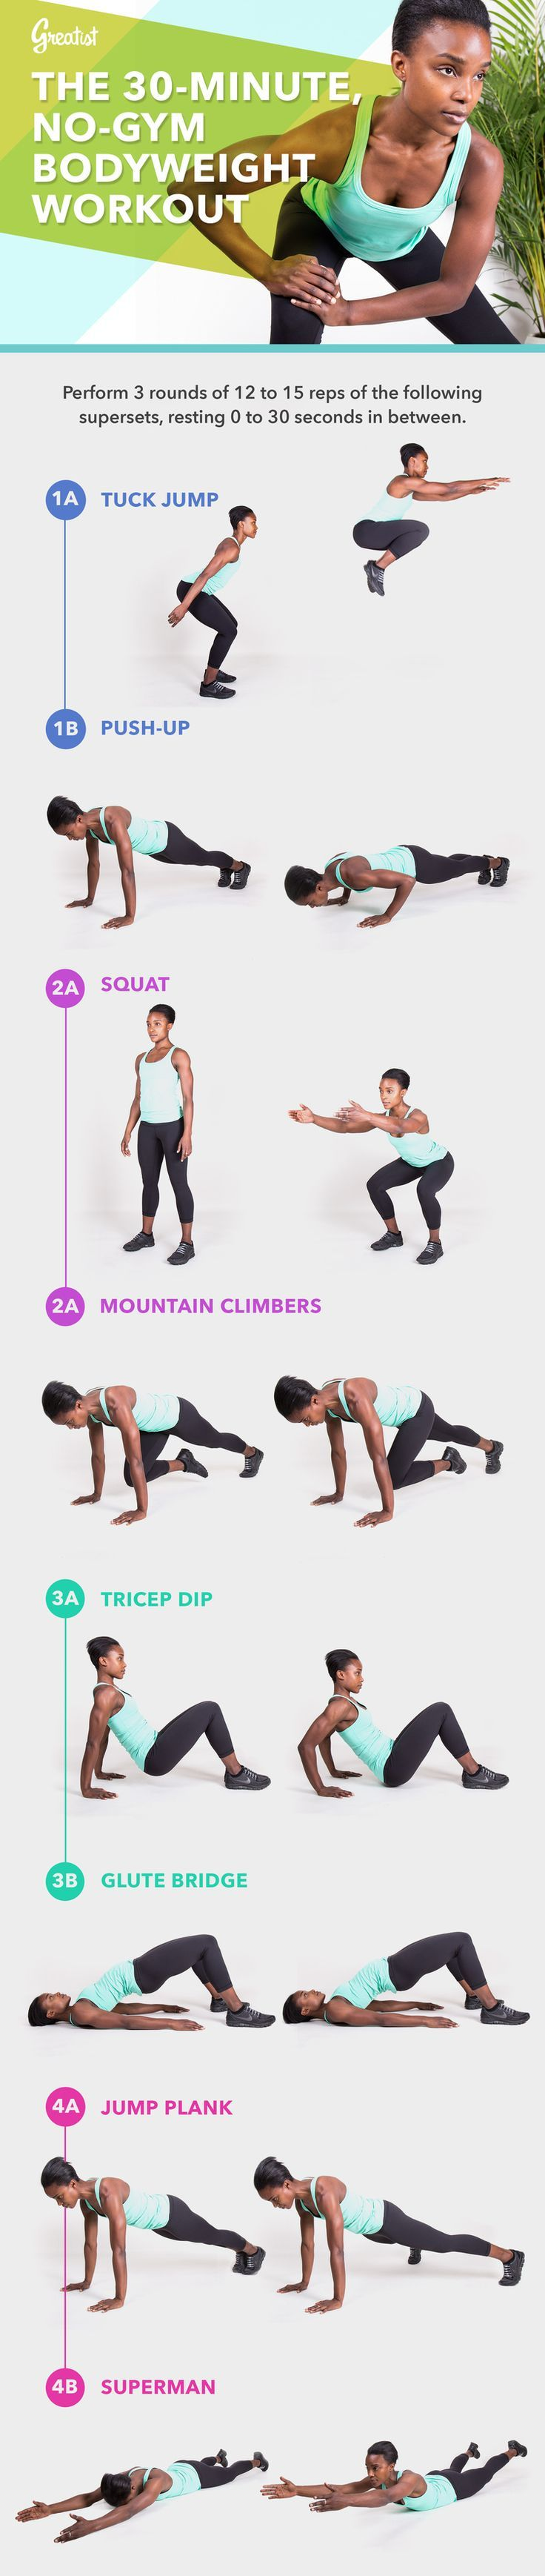 30 Minute Home Bodyweight Workout Graphic Fitness